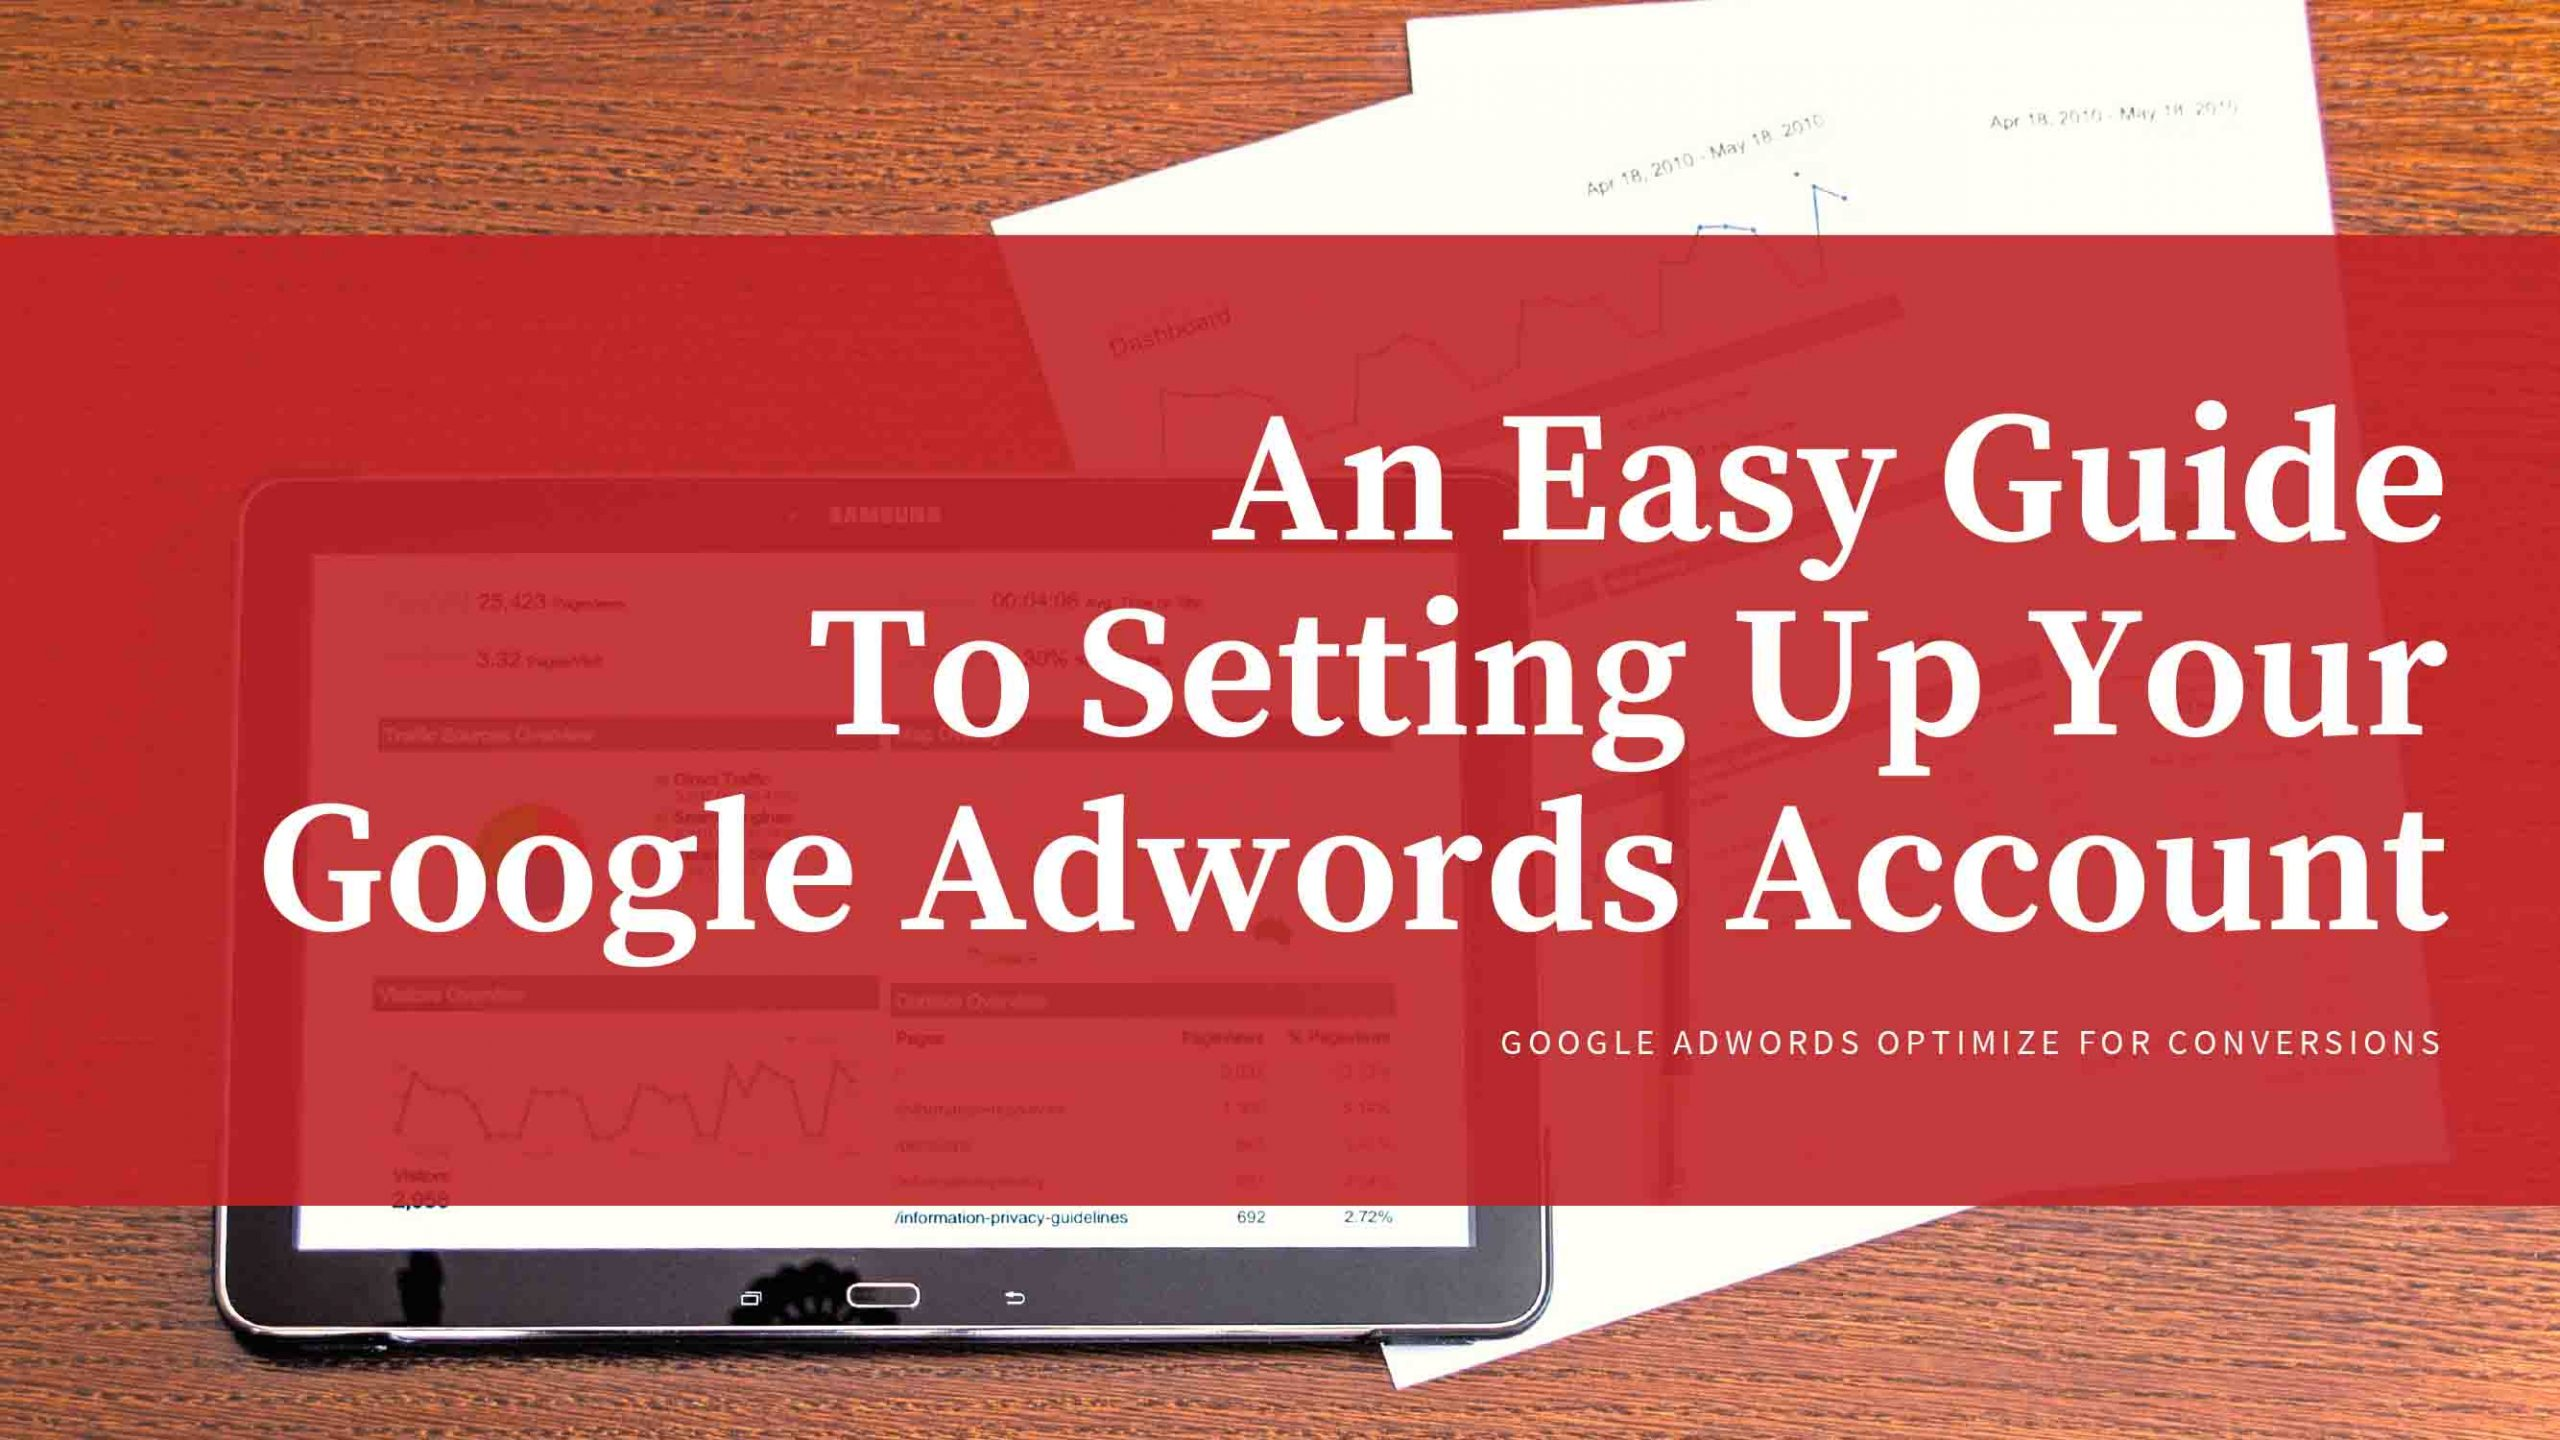 Easy Guide To Setting Up Your Google Adwords Account - Freelancers HUB